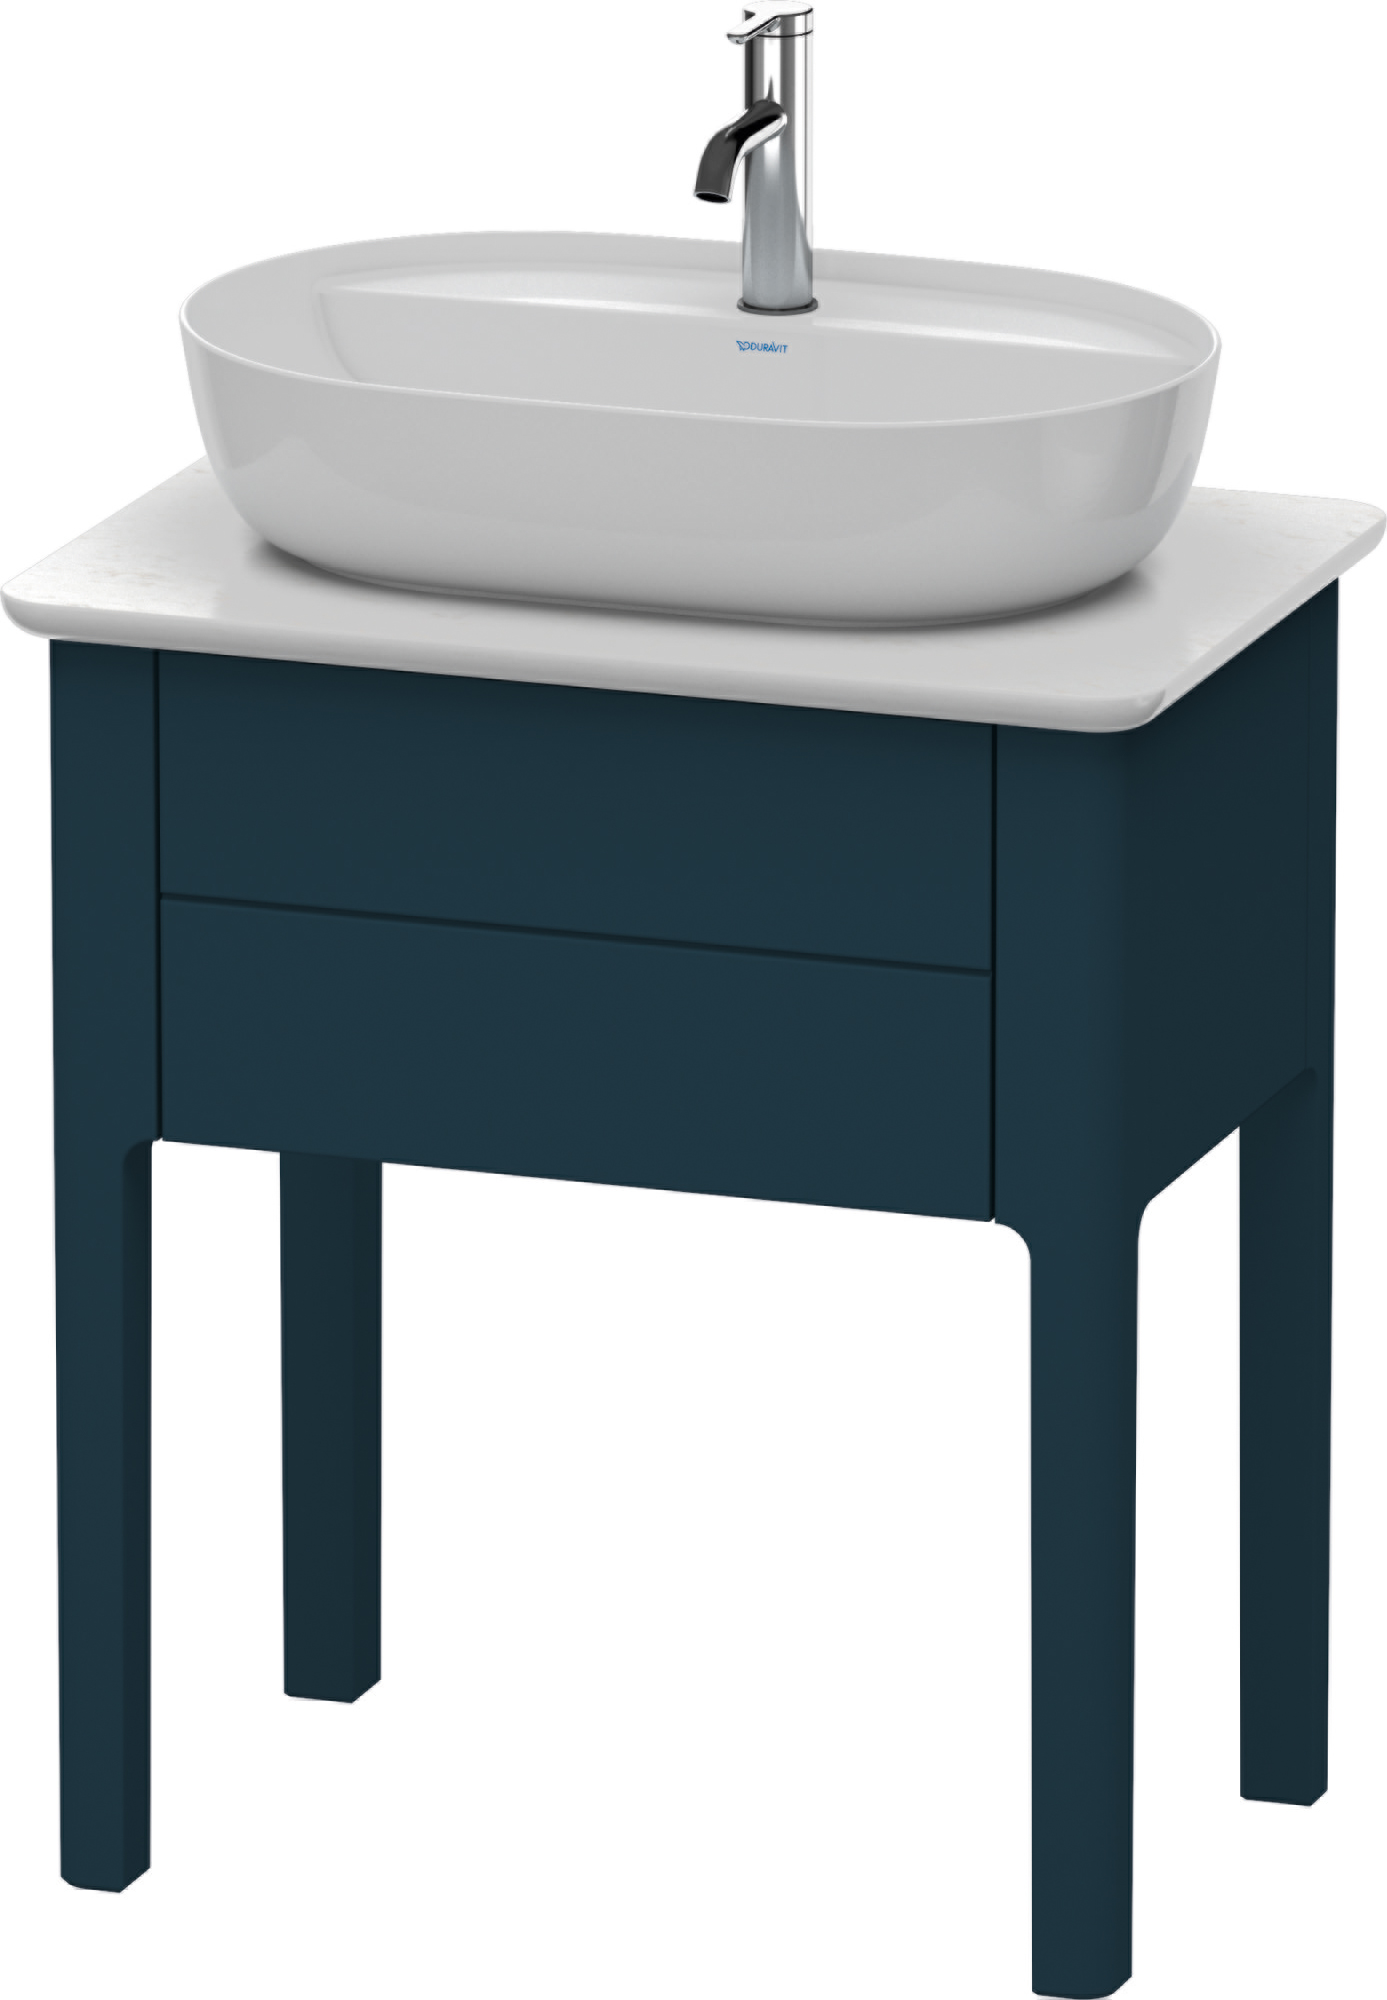 Duravit Luv Vanity Unit For Console 638 With 1 Drawer 1 Basin Cut Out Center Night Blue Silk Matt Xtwostore